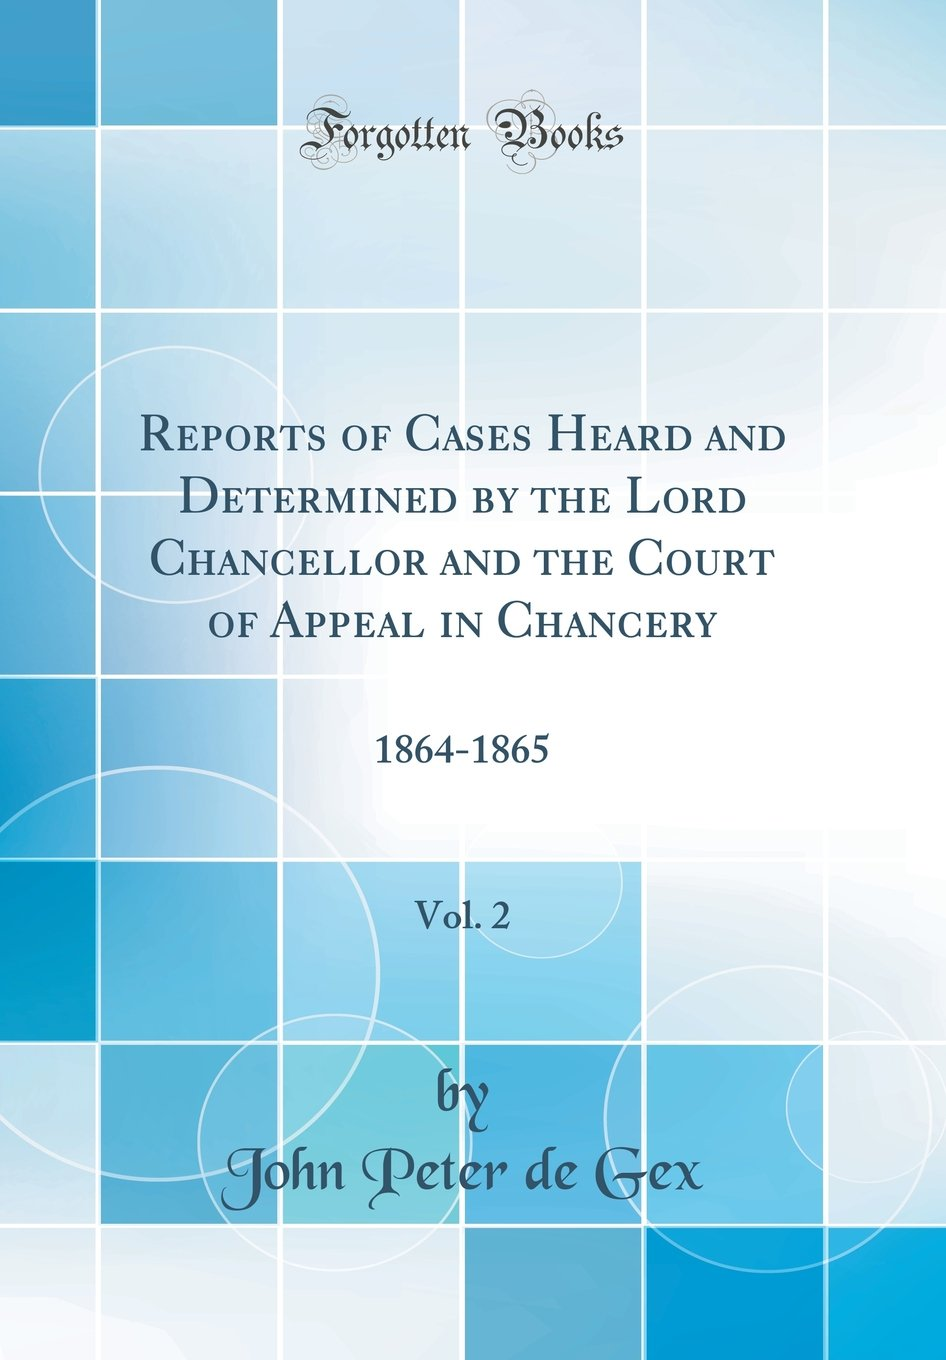 Reports of Cases Heard and Determined by the Lord Chancellor and the Court of Appeal in Chancery, Vol. 2: 1864-1865 (Classic Reprint) ebook